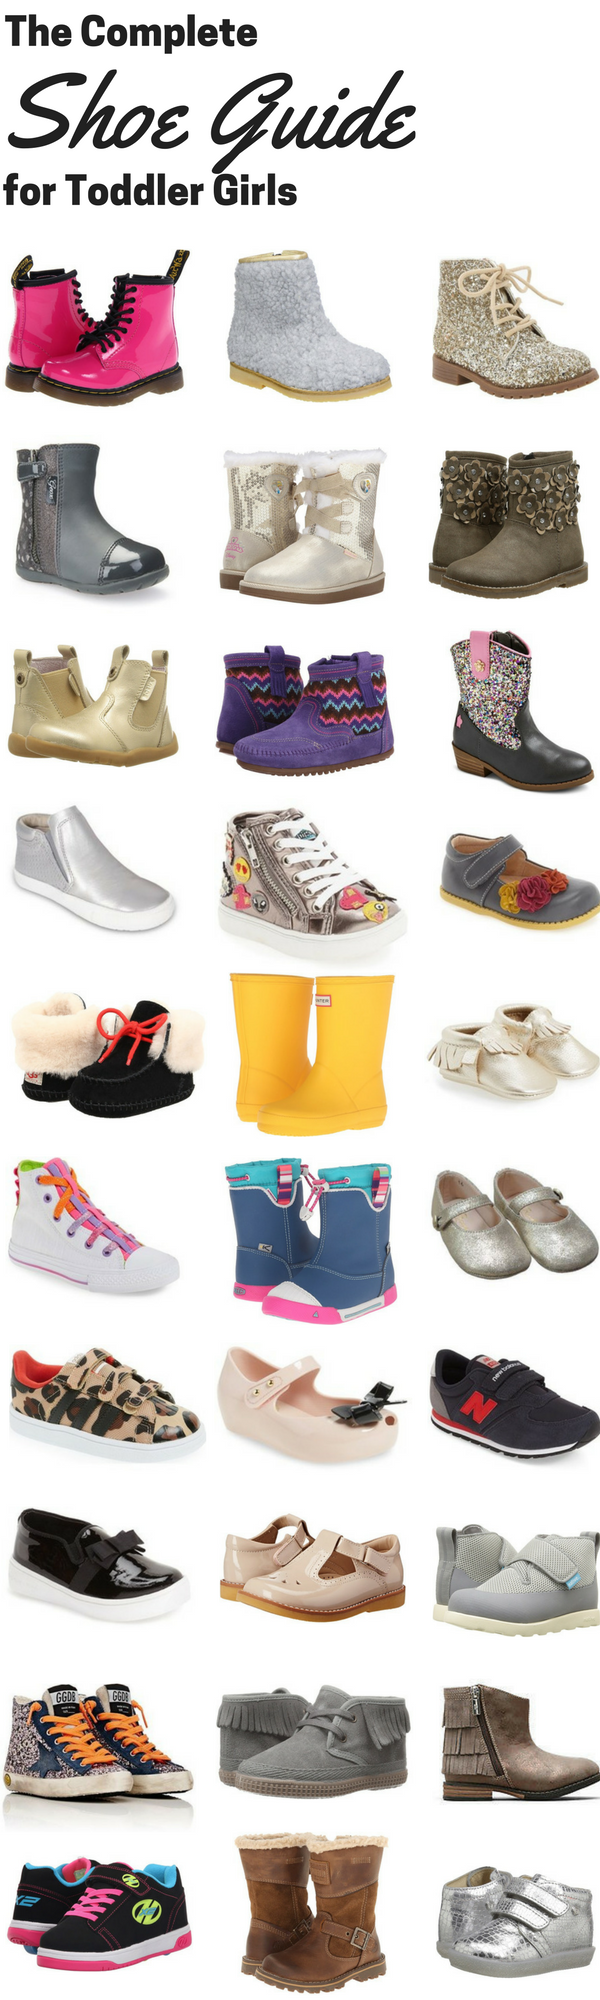 The Complete Guide to Cute Kids Shoes for Fall